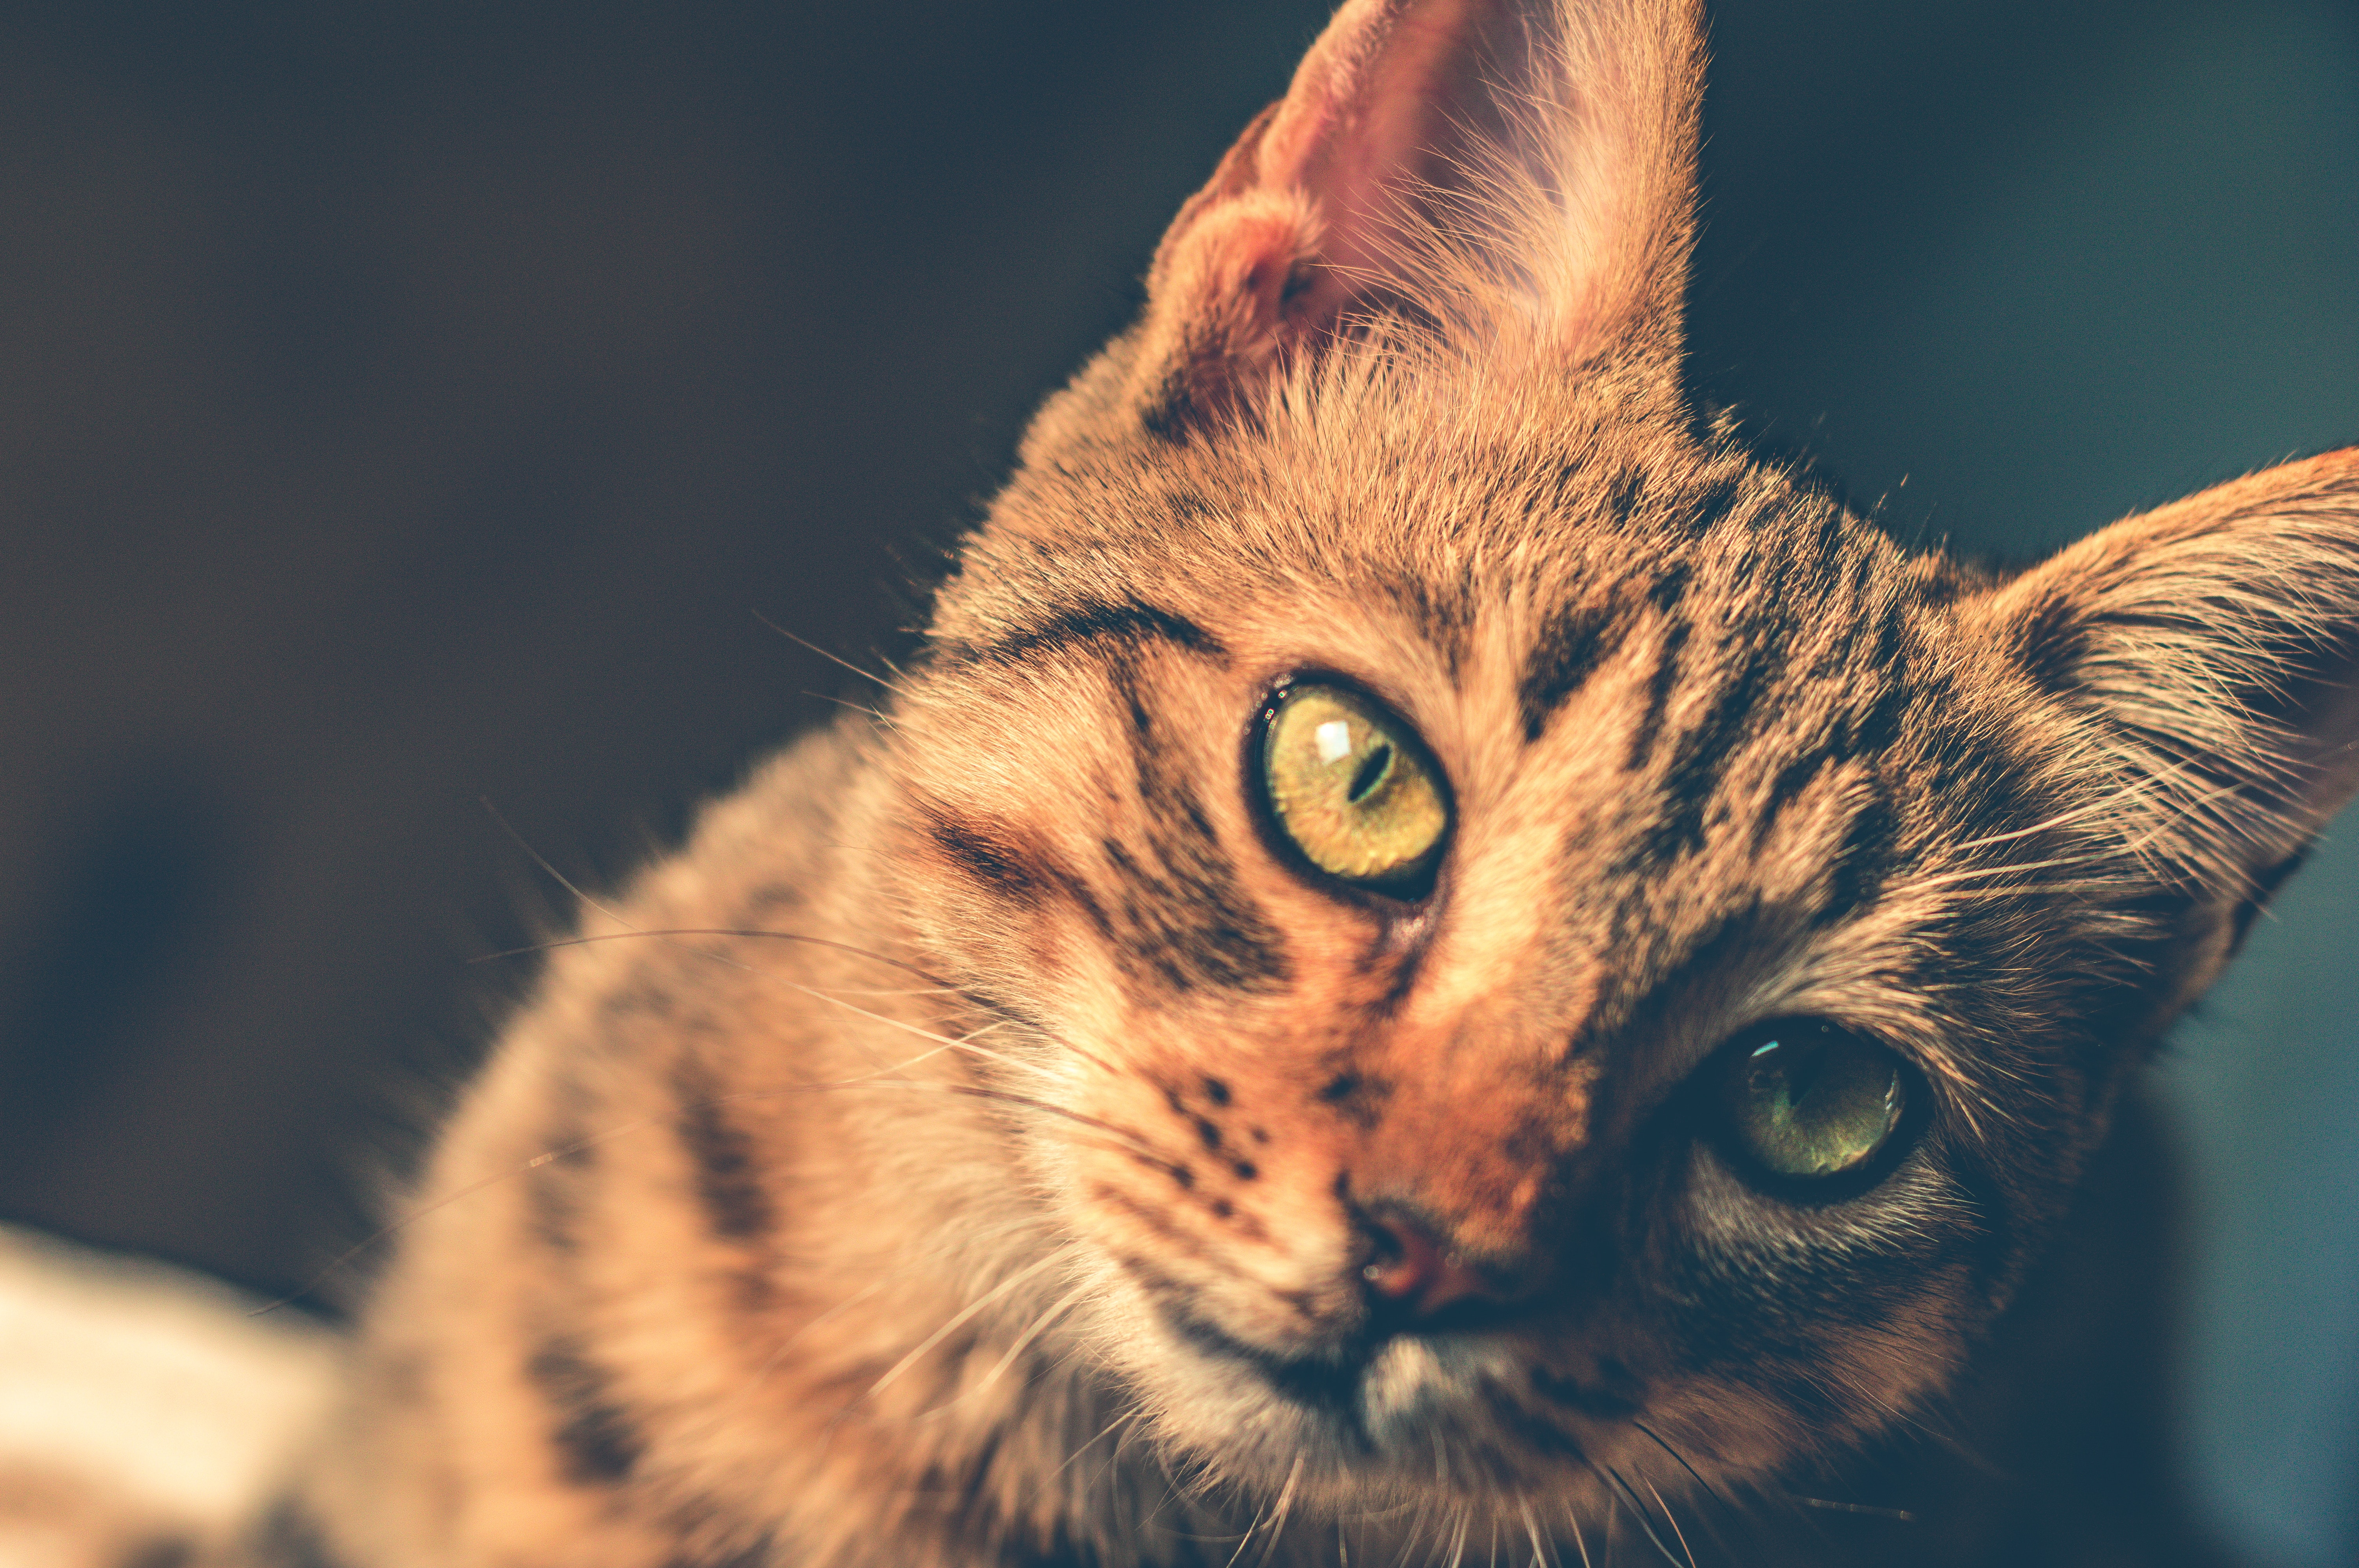 Black and Brown Tabby Cat, Kitty, Young, Wildlife, Whiskers, HQ Photo